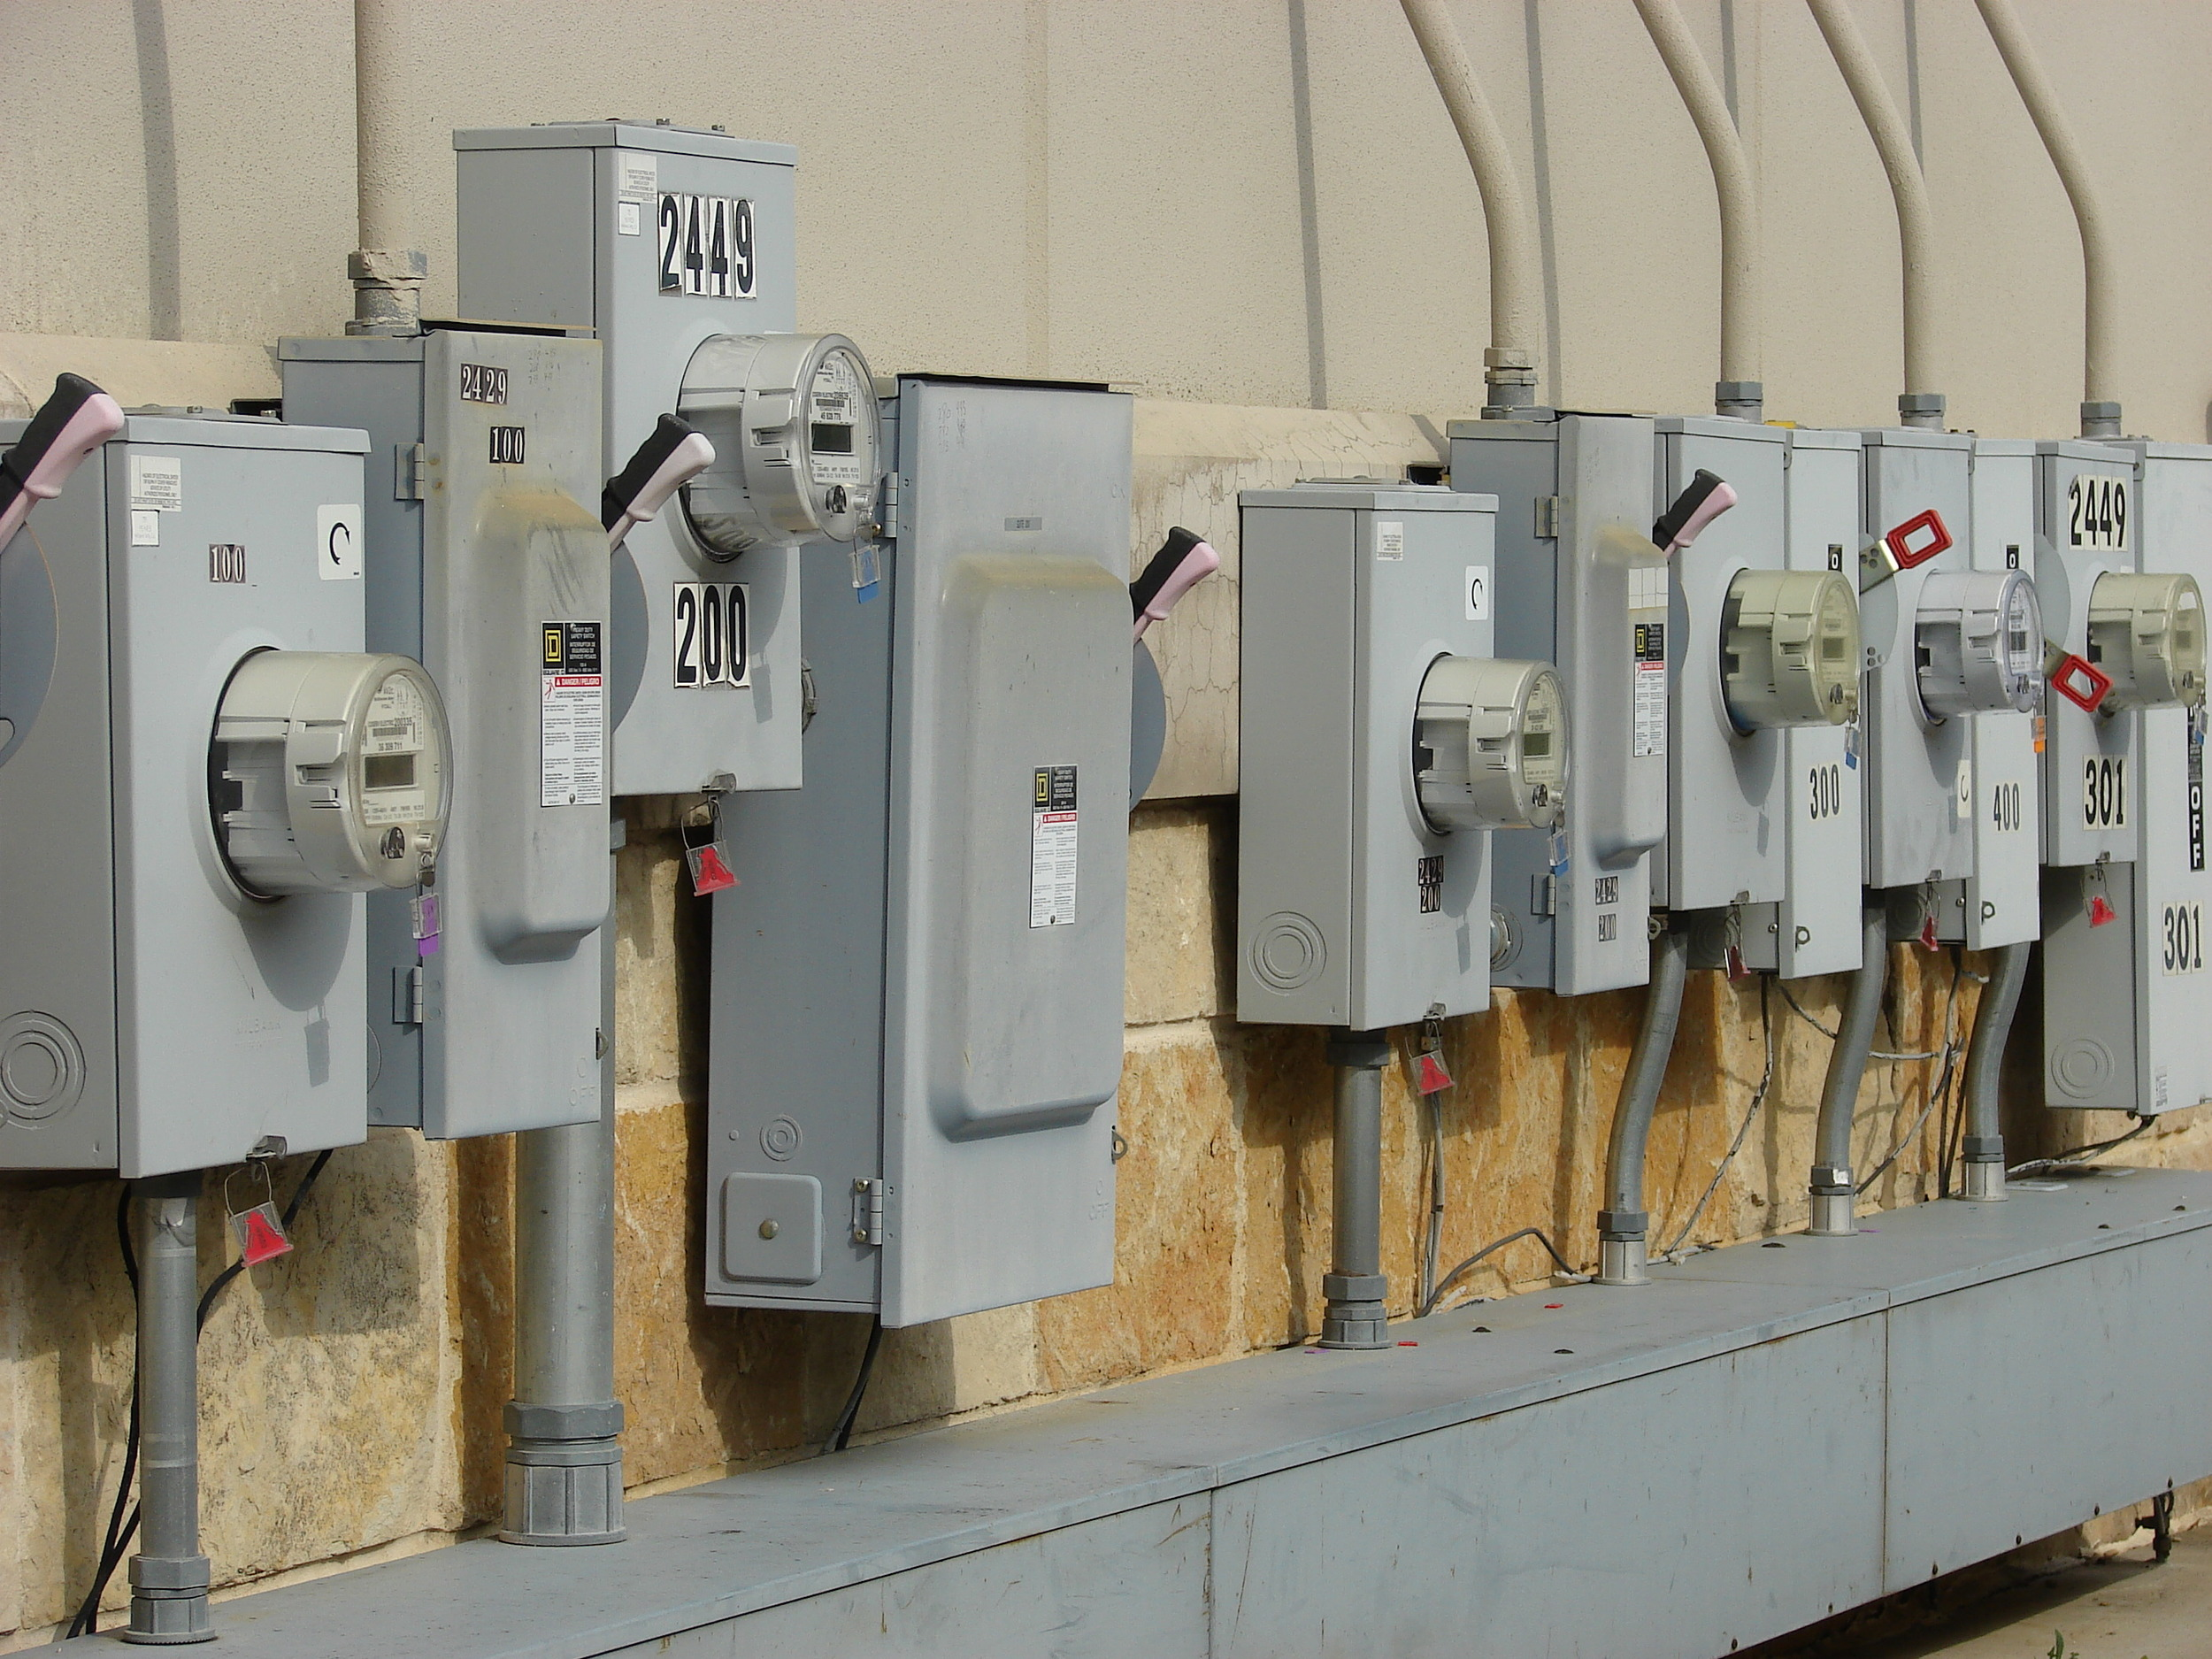 Electric-meter-boxes-4625.jpg